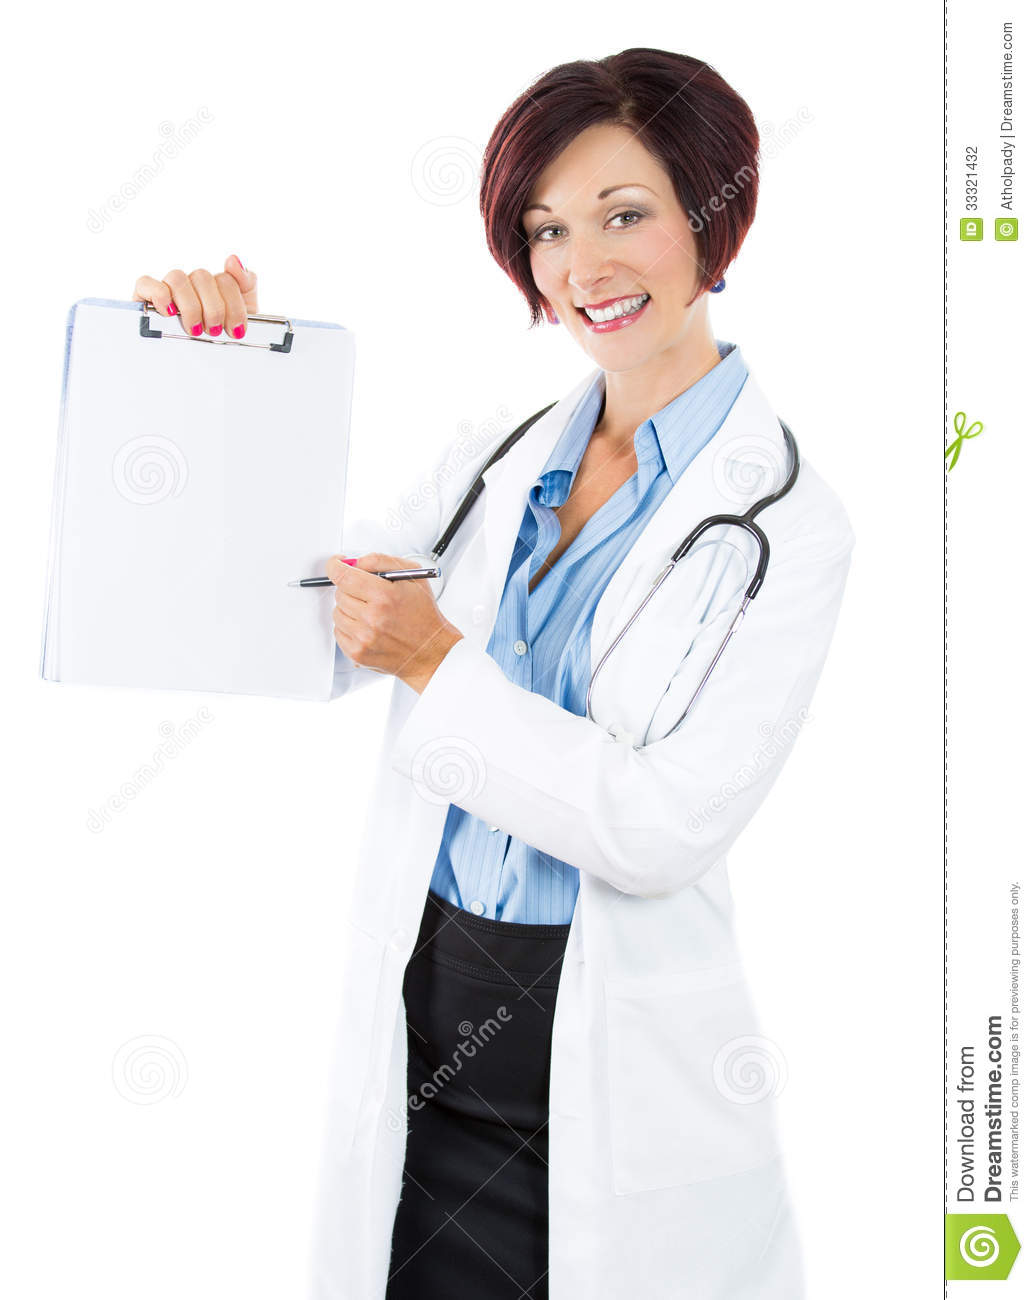 Medical Sign Patient S Informed Consent Contract